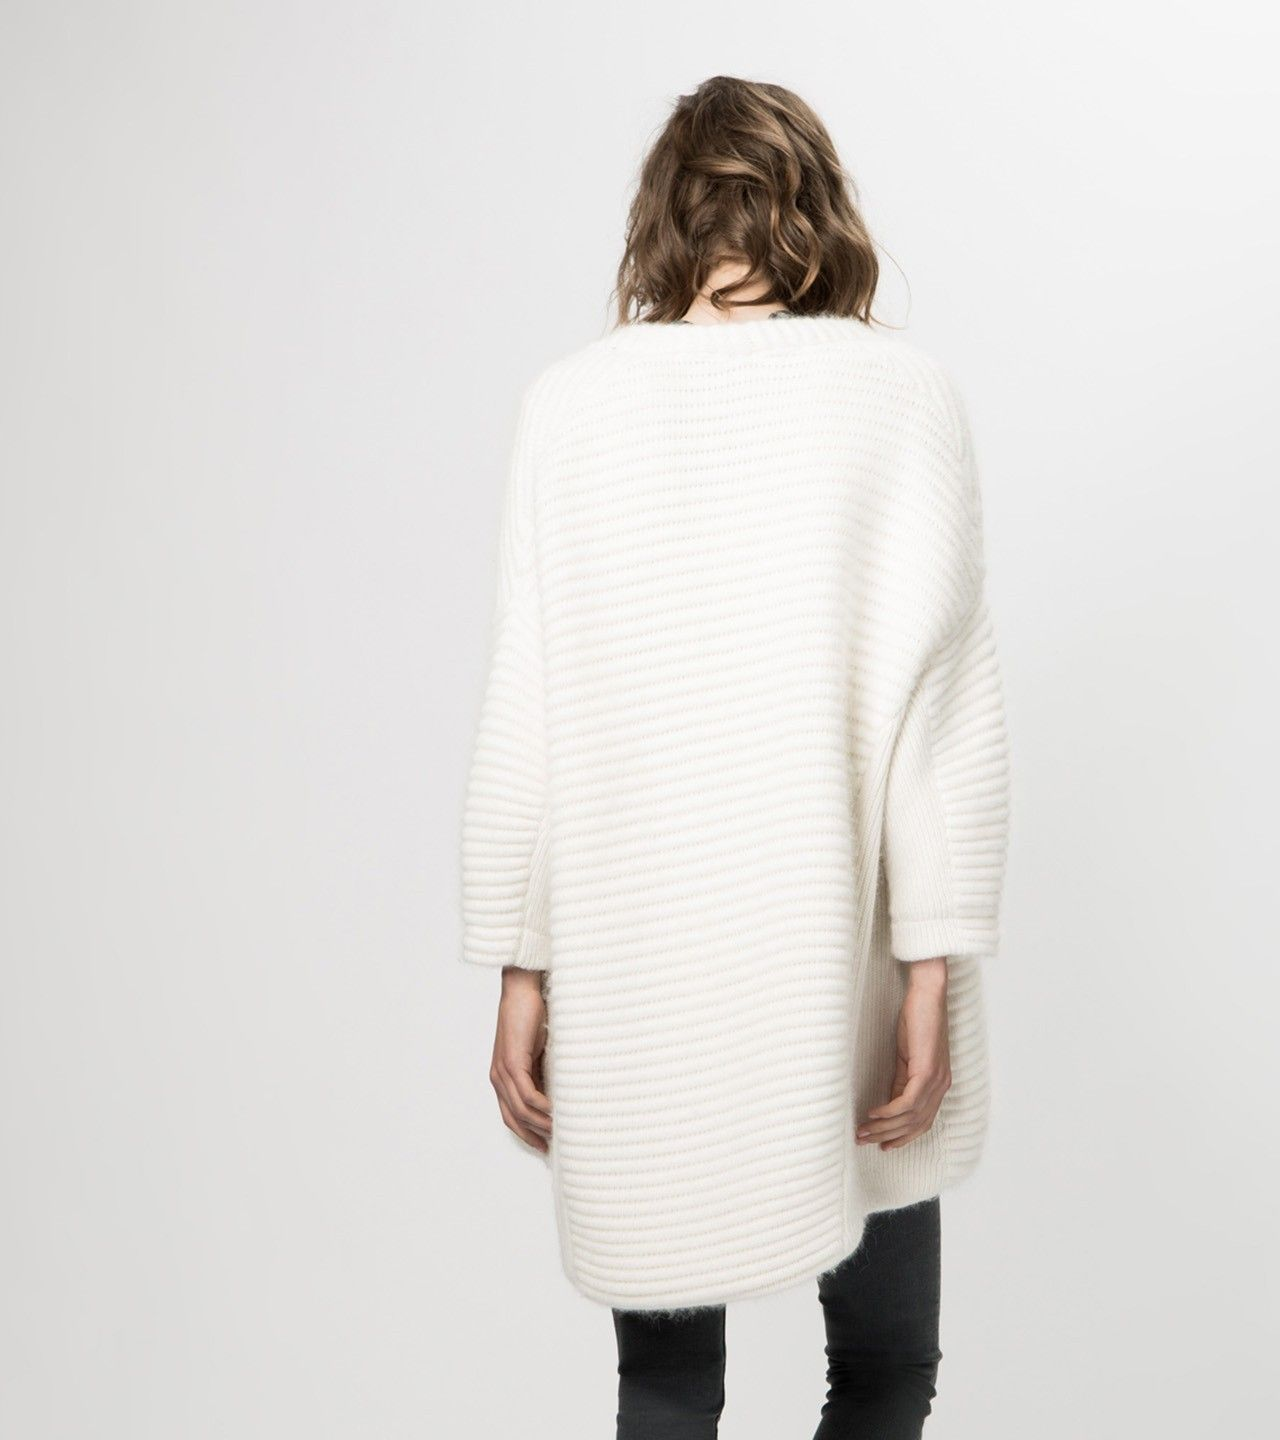 maje GLACIER Angora Blend Cardigan at Maje US | lovely things to ...